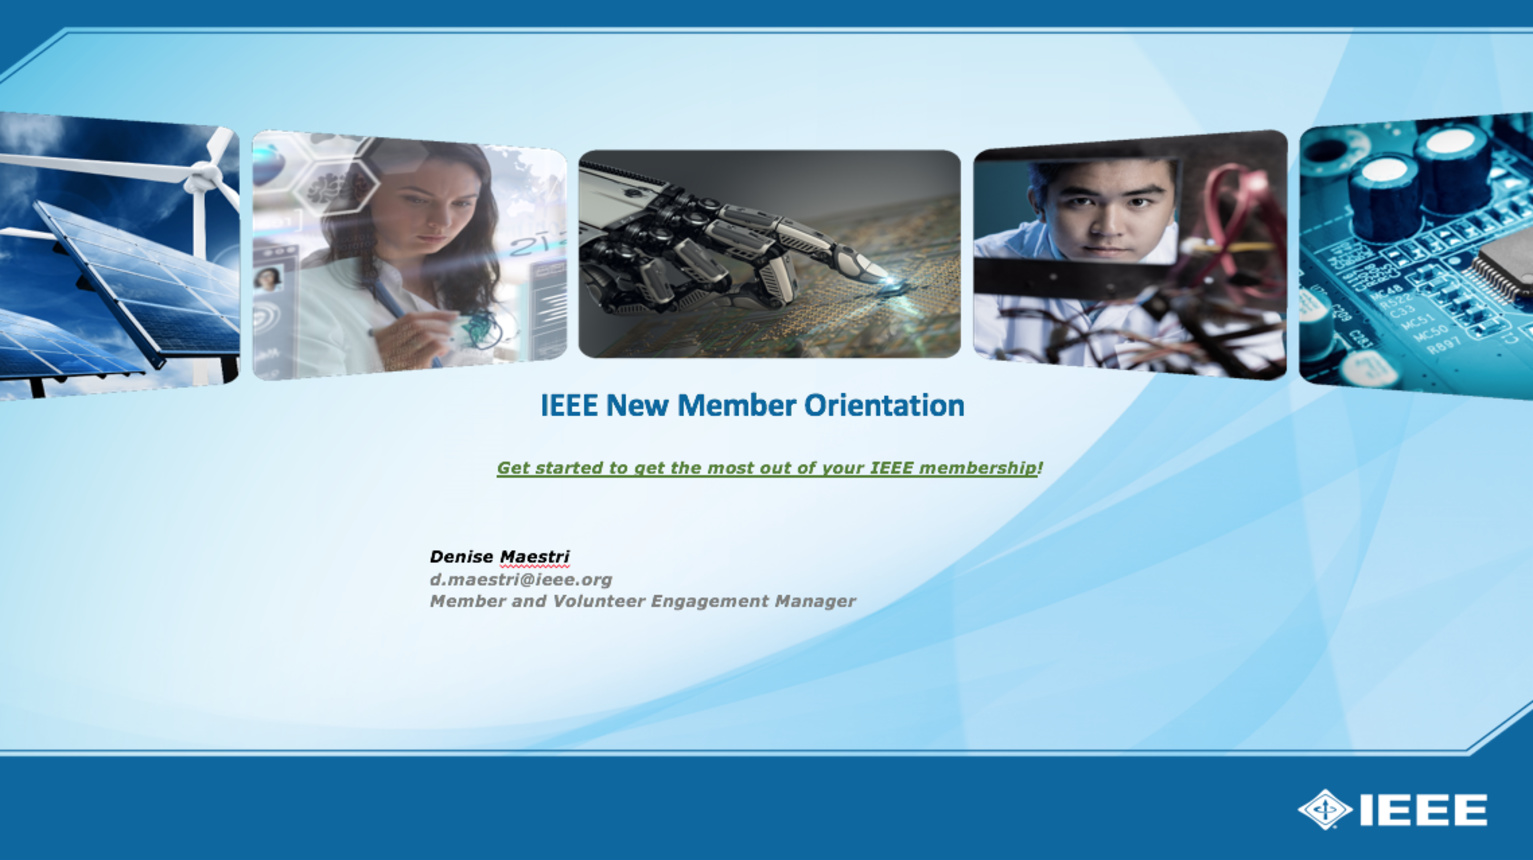 How to Get the Most Out of Your IEEE Membership